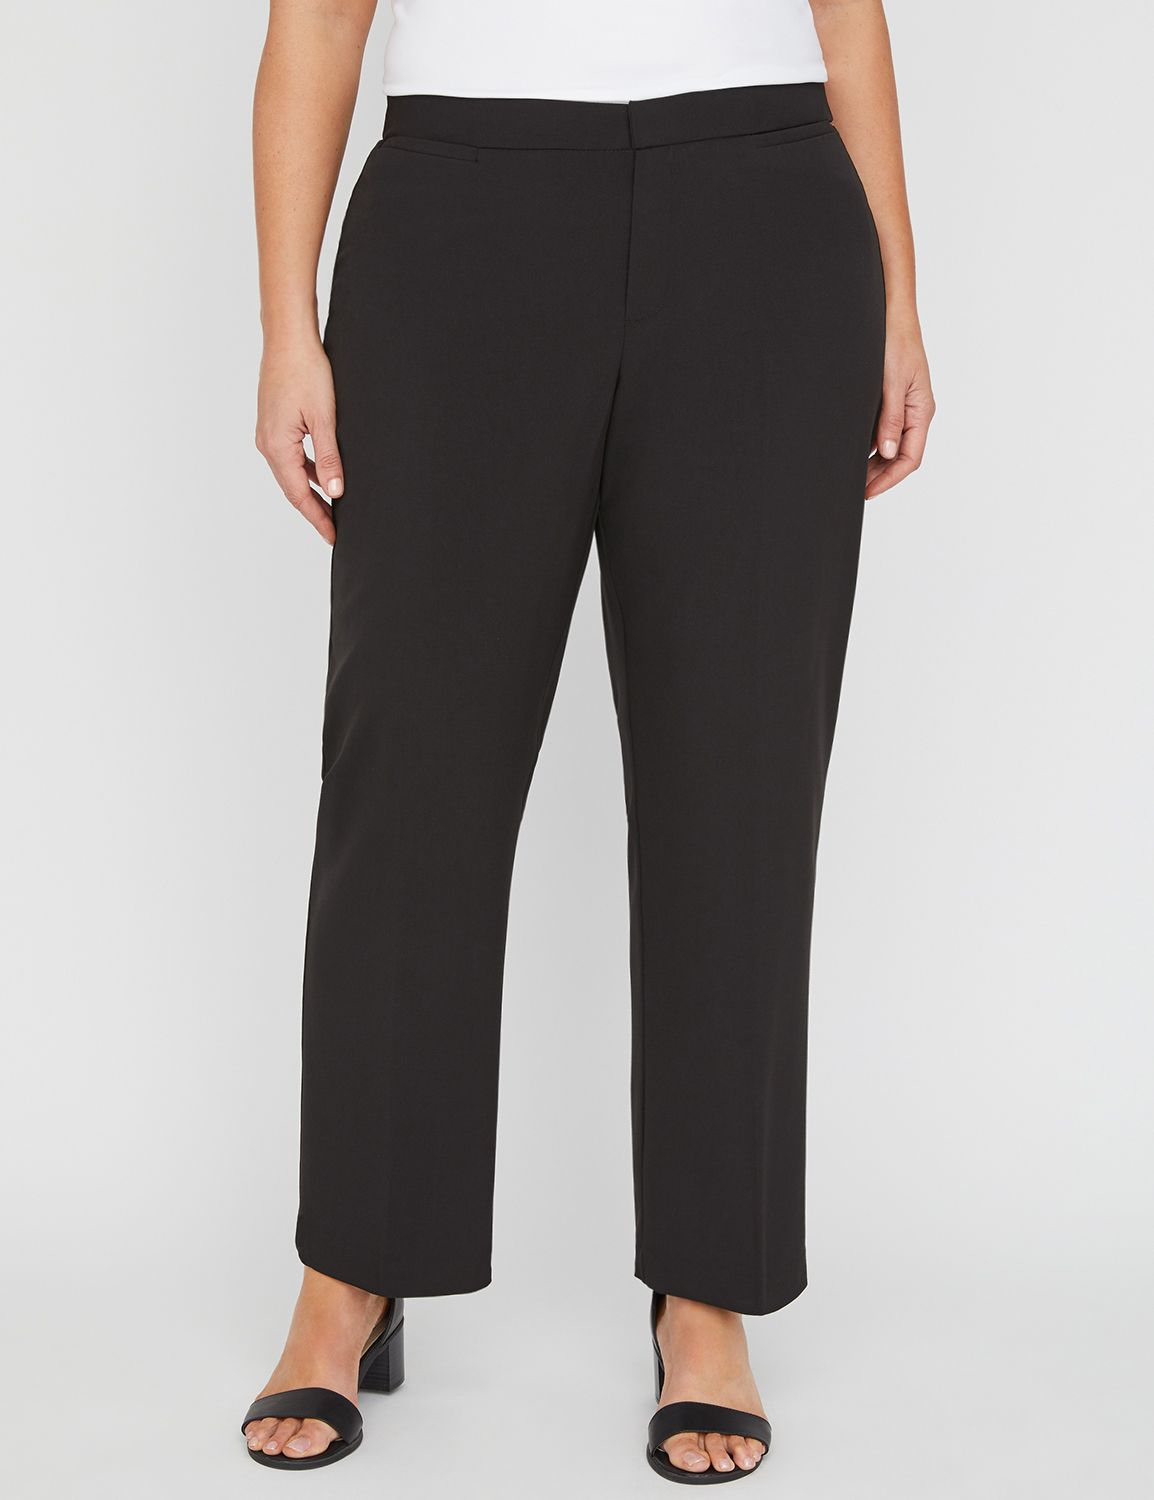 Right Fit Pant (Moderately Curvy) Right Fit Pant (Moderately Curvy) MP-300009884